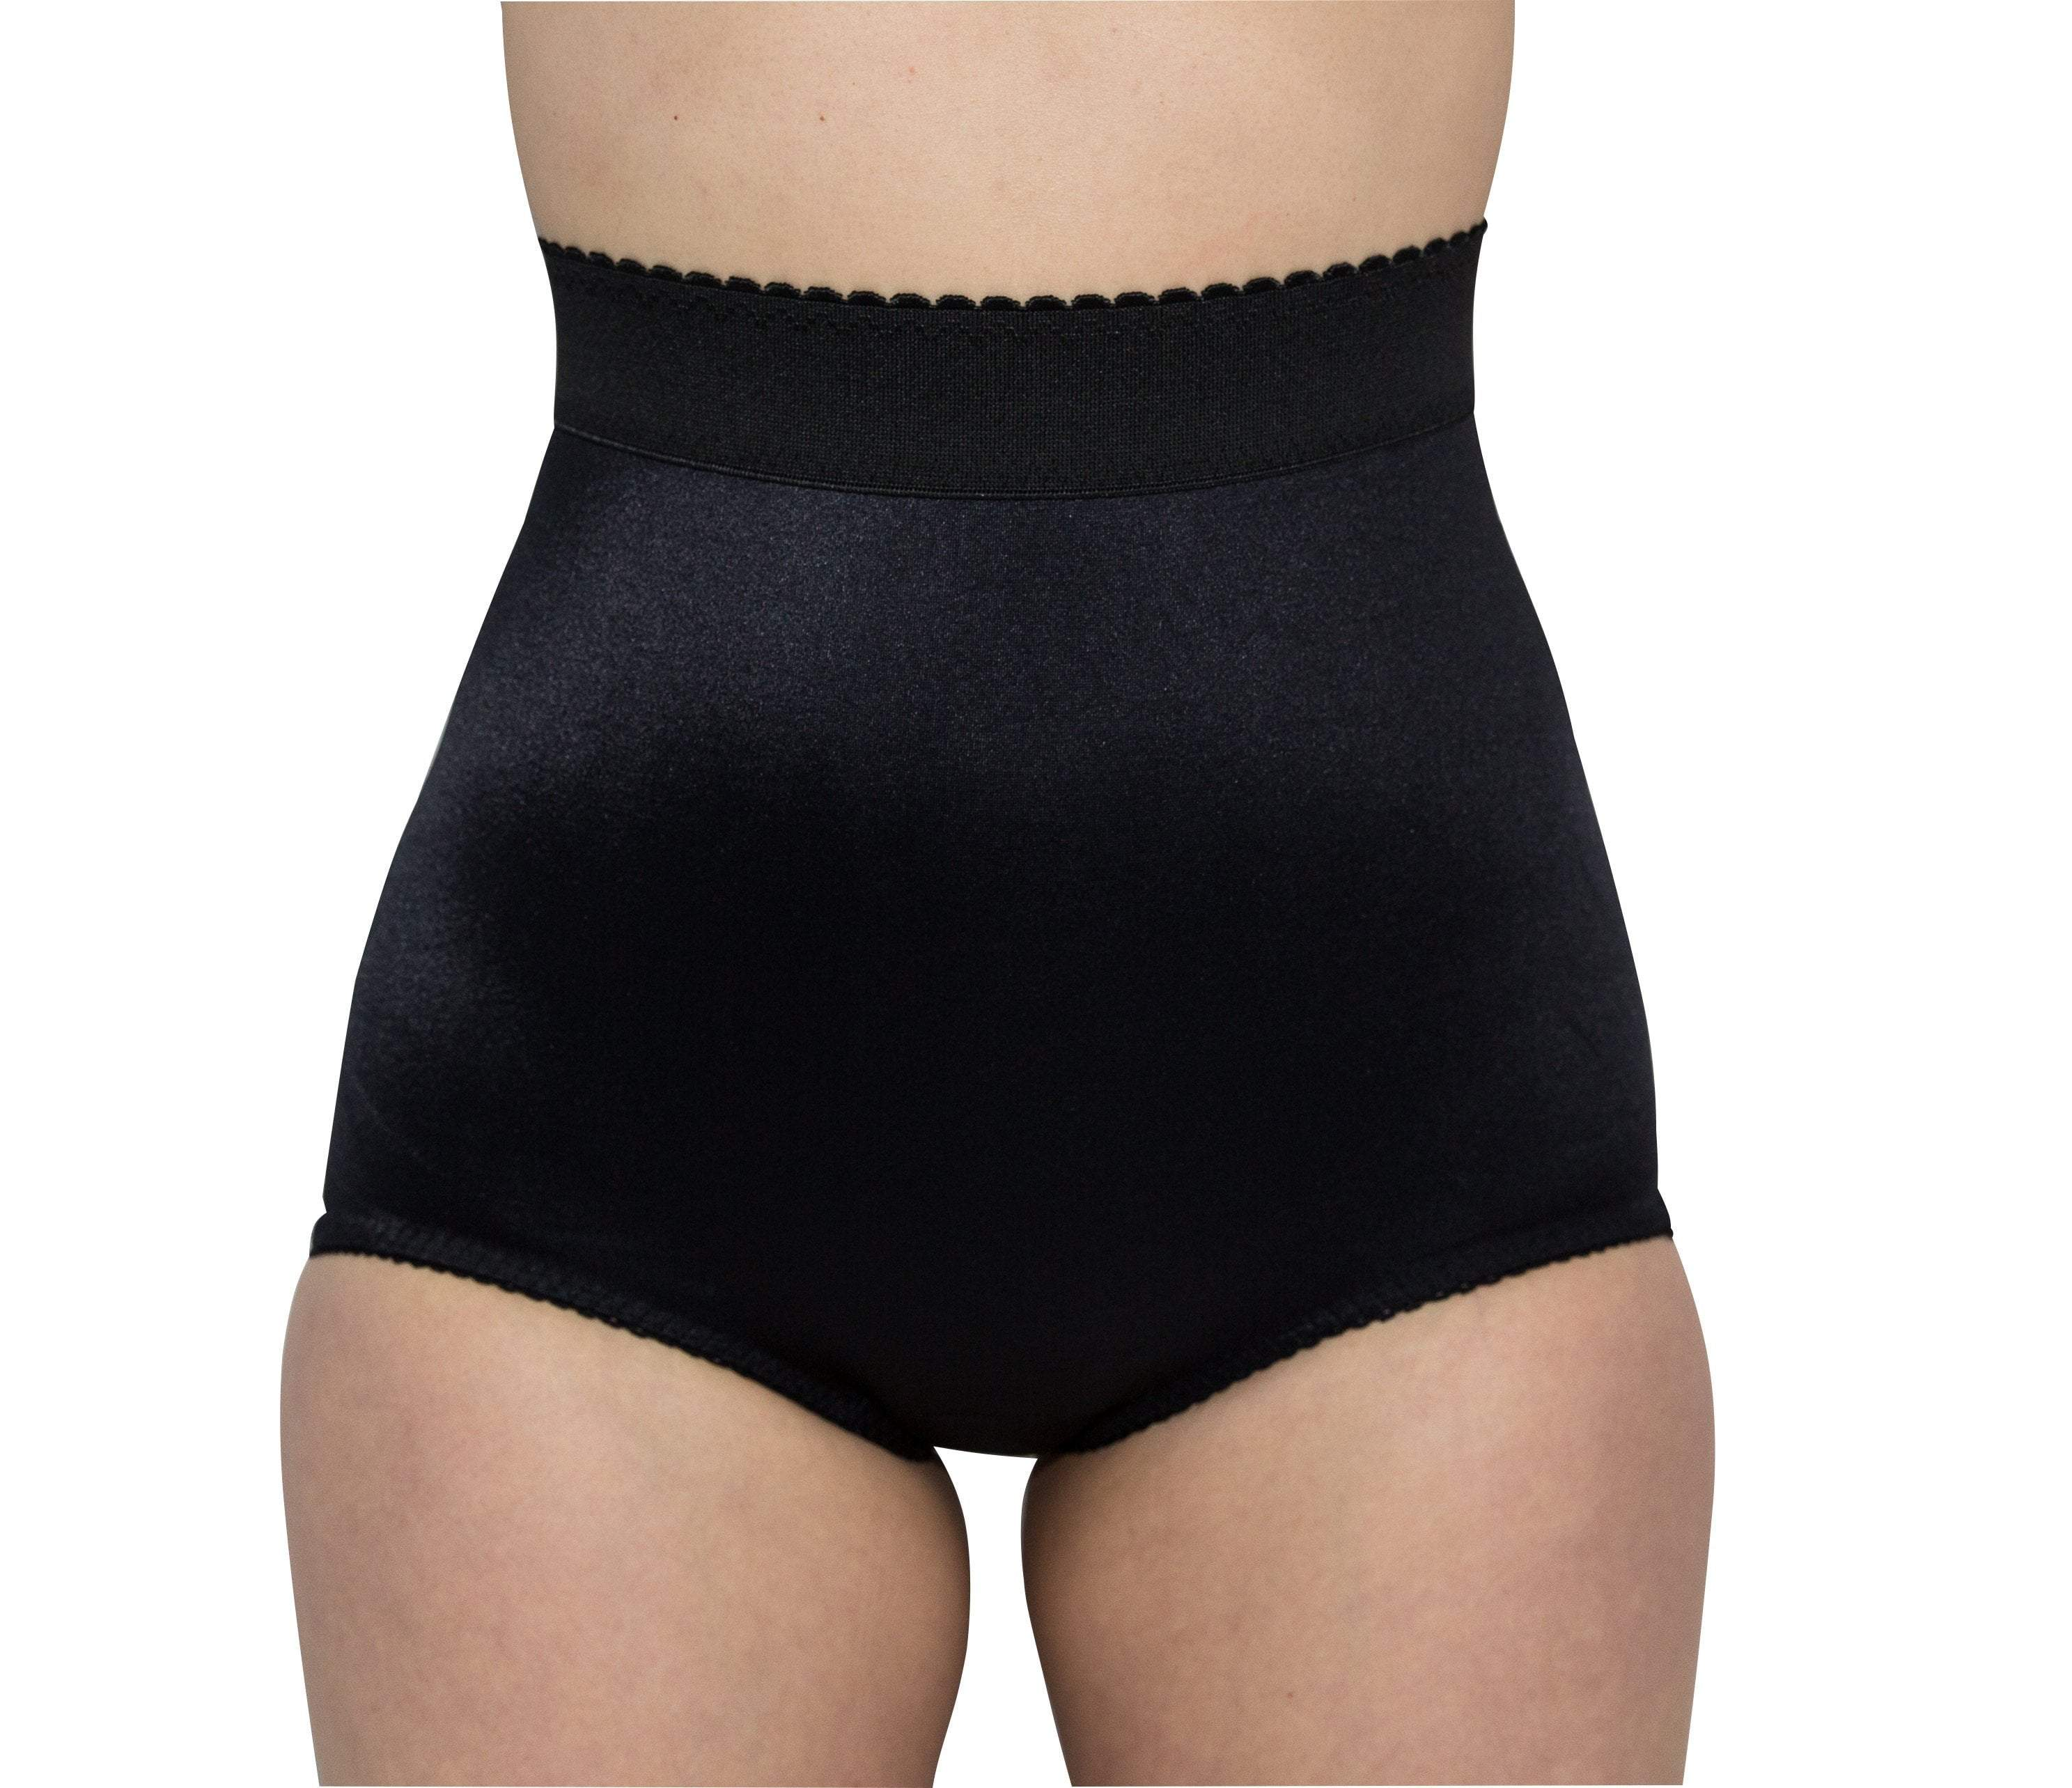 d9fab76d72b1 Home › RAGO Style 513 - High Waist Light Shaping Panty Brief. Previous